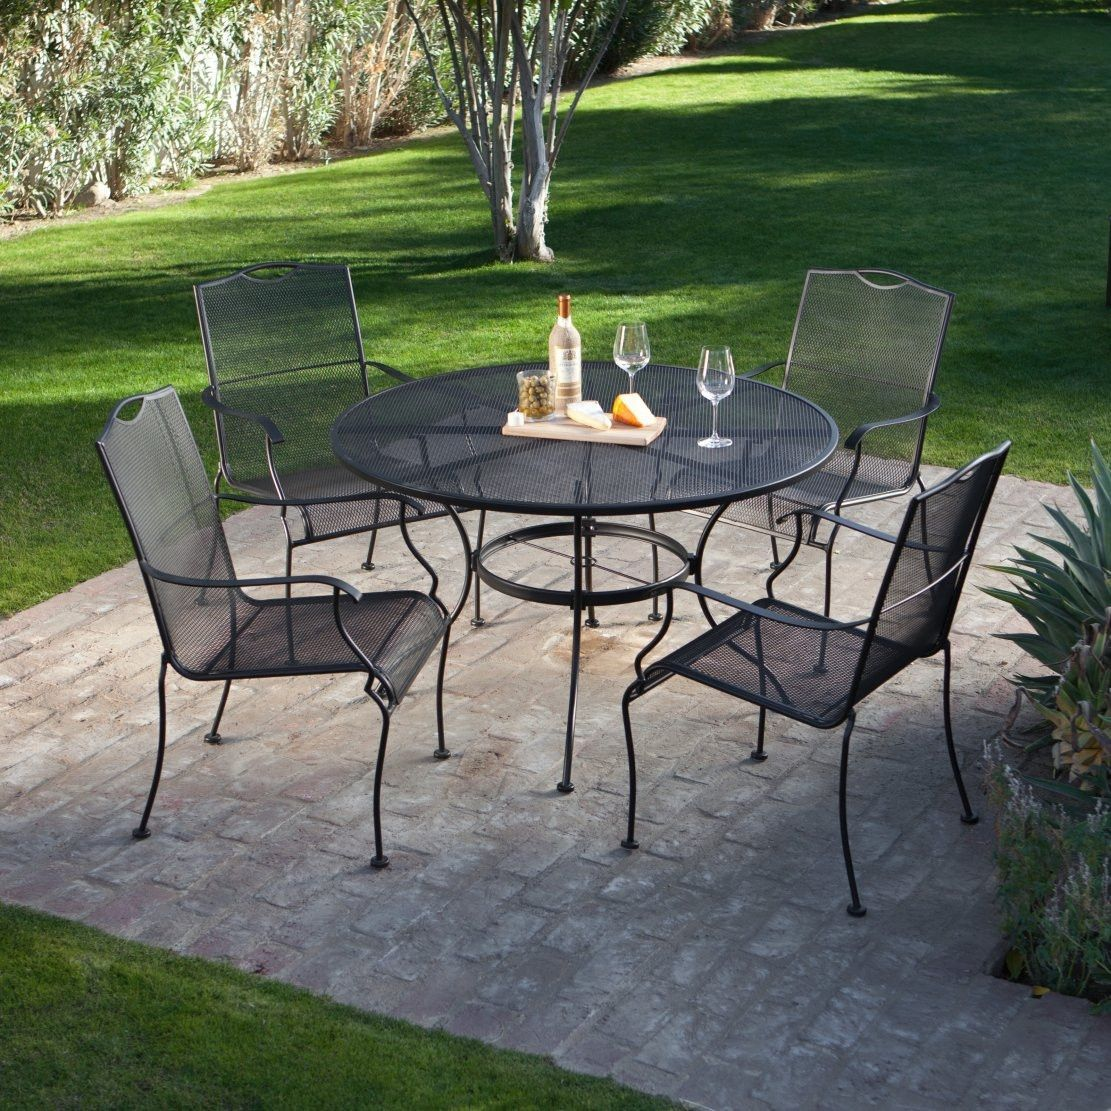 5 Piece Wrought Iron Patio Furniture Dining Set Seats 4 Outdoors